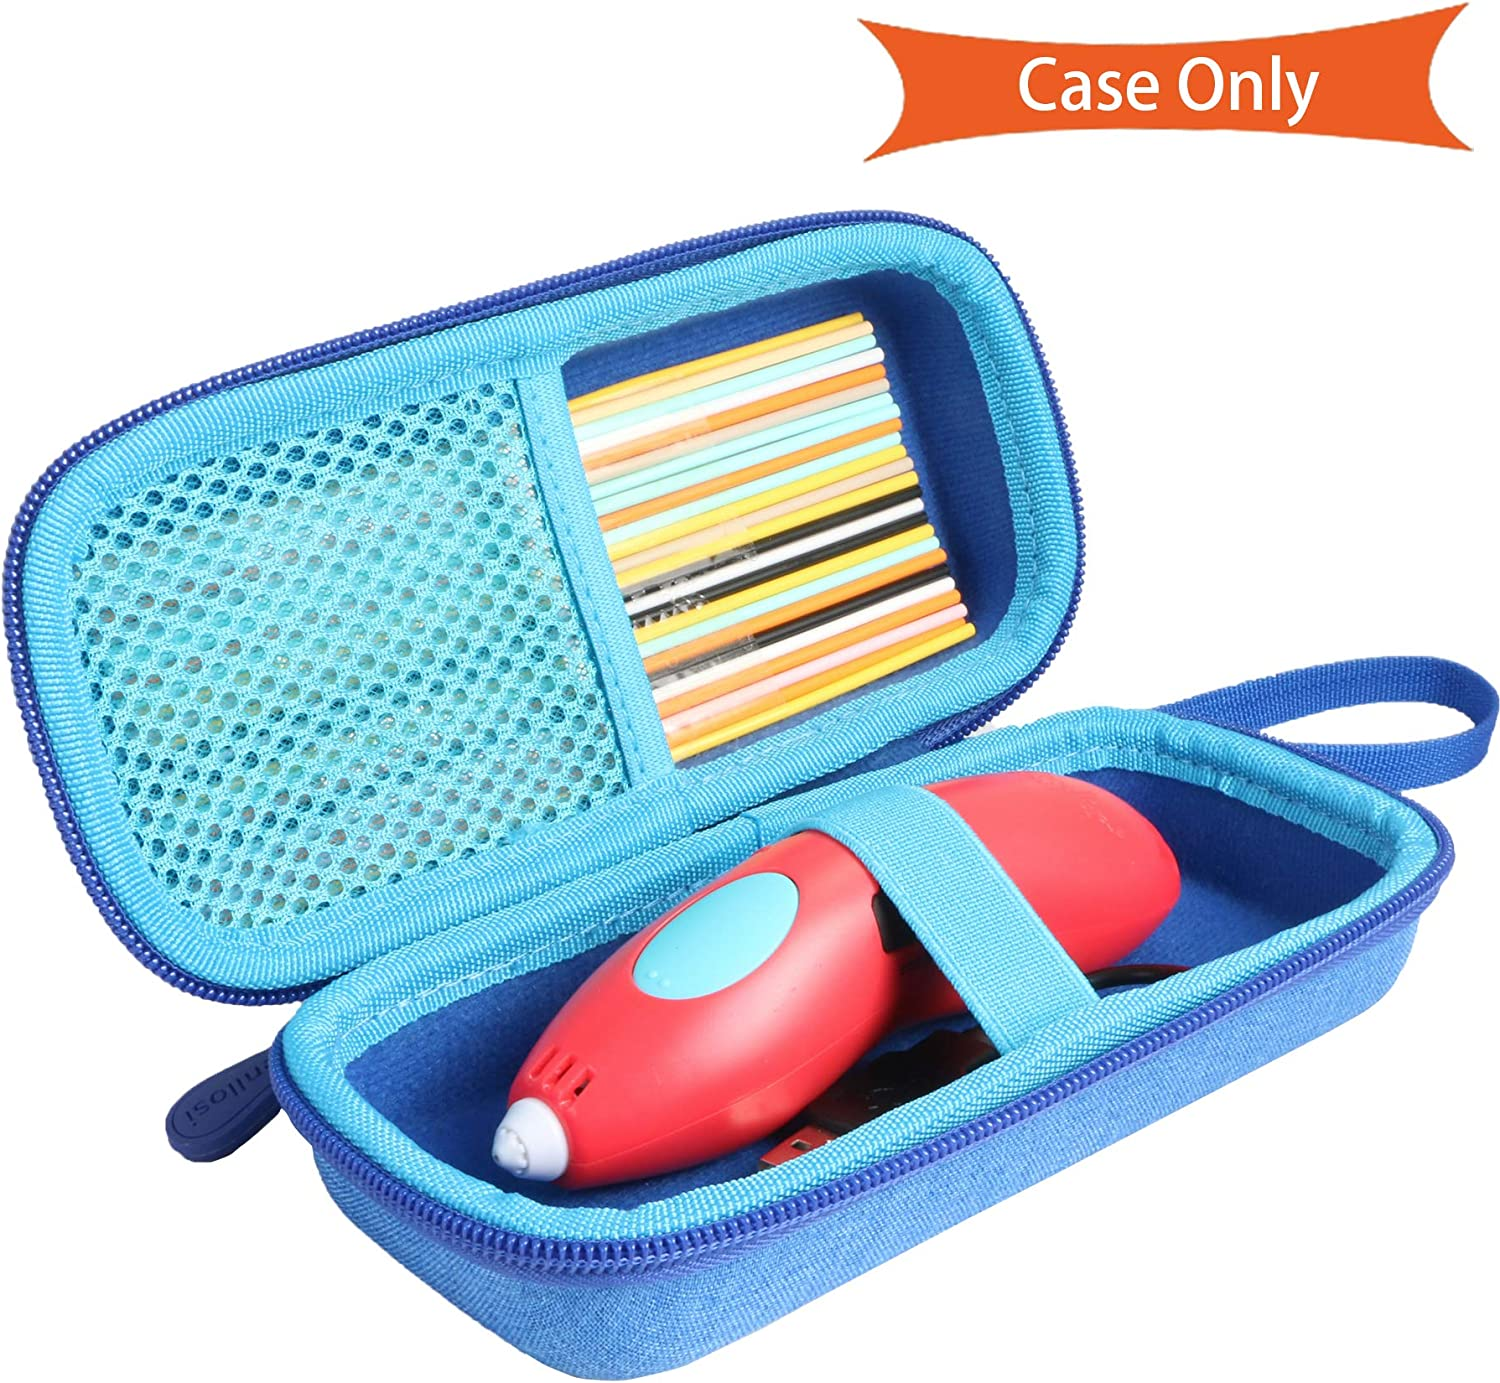 3D Pen Set 2020 Aenllosi Hard Carrying Case Compatible with 3Doodler Start Essentials